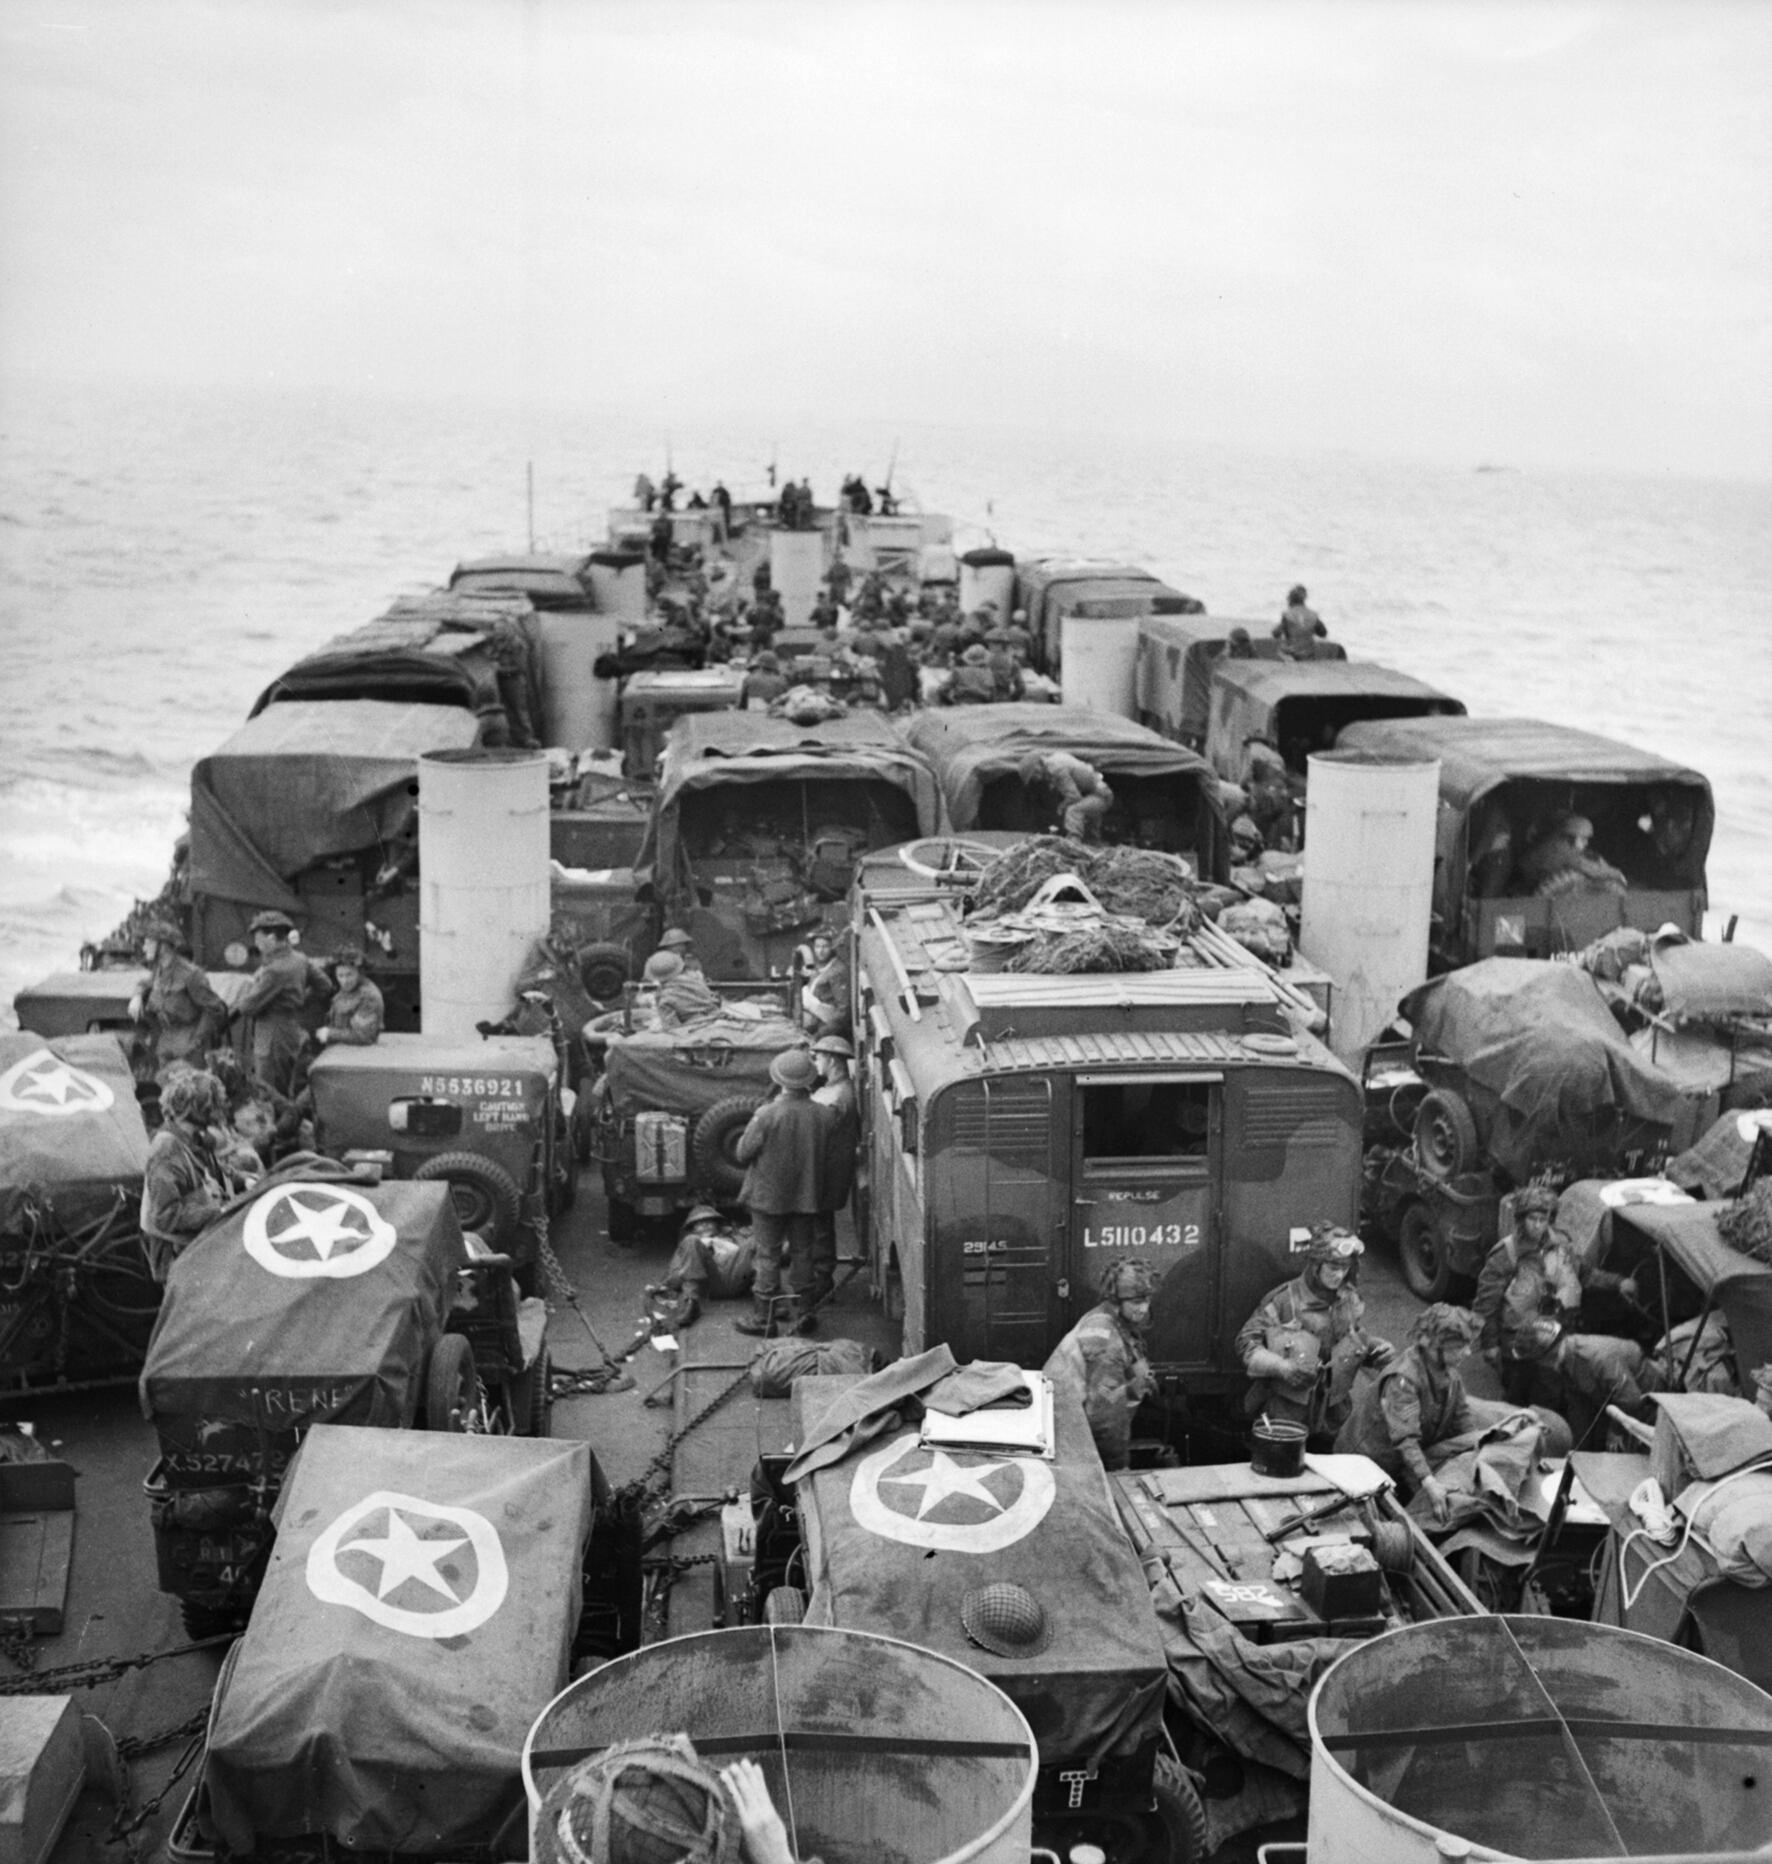 a history of the d day an invasion of normandy on june 6 1944 American soldiers and supplies arrive on the shore of the french coast of german-occupied normandy during the allied d-day invasion on june 6, 1944 in world war ii  at normandy, france, june 6 .